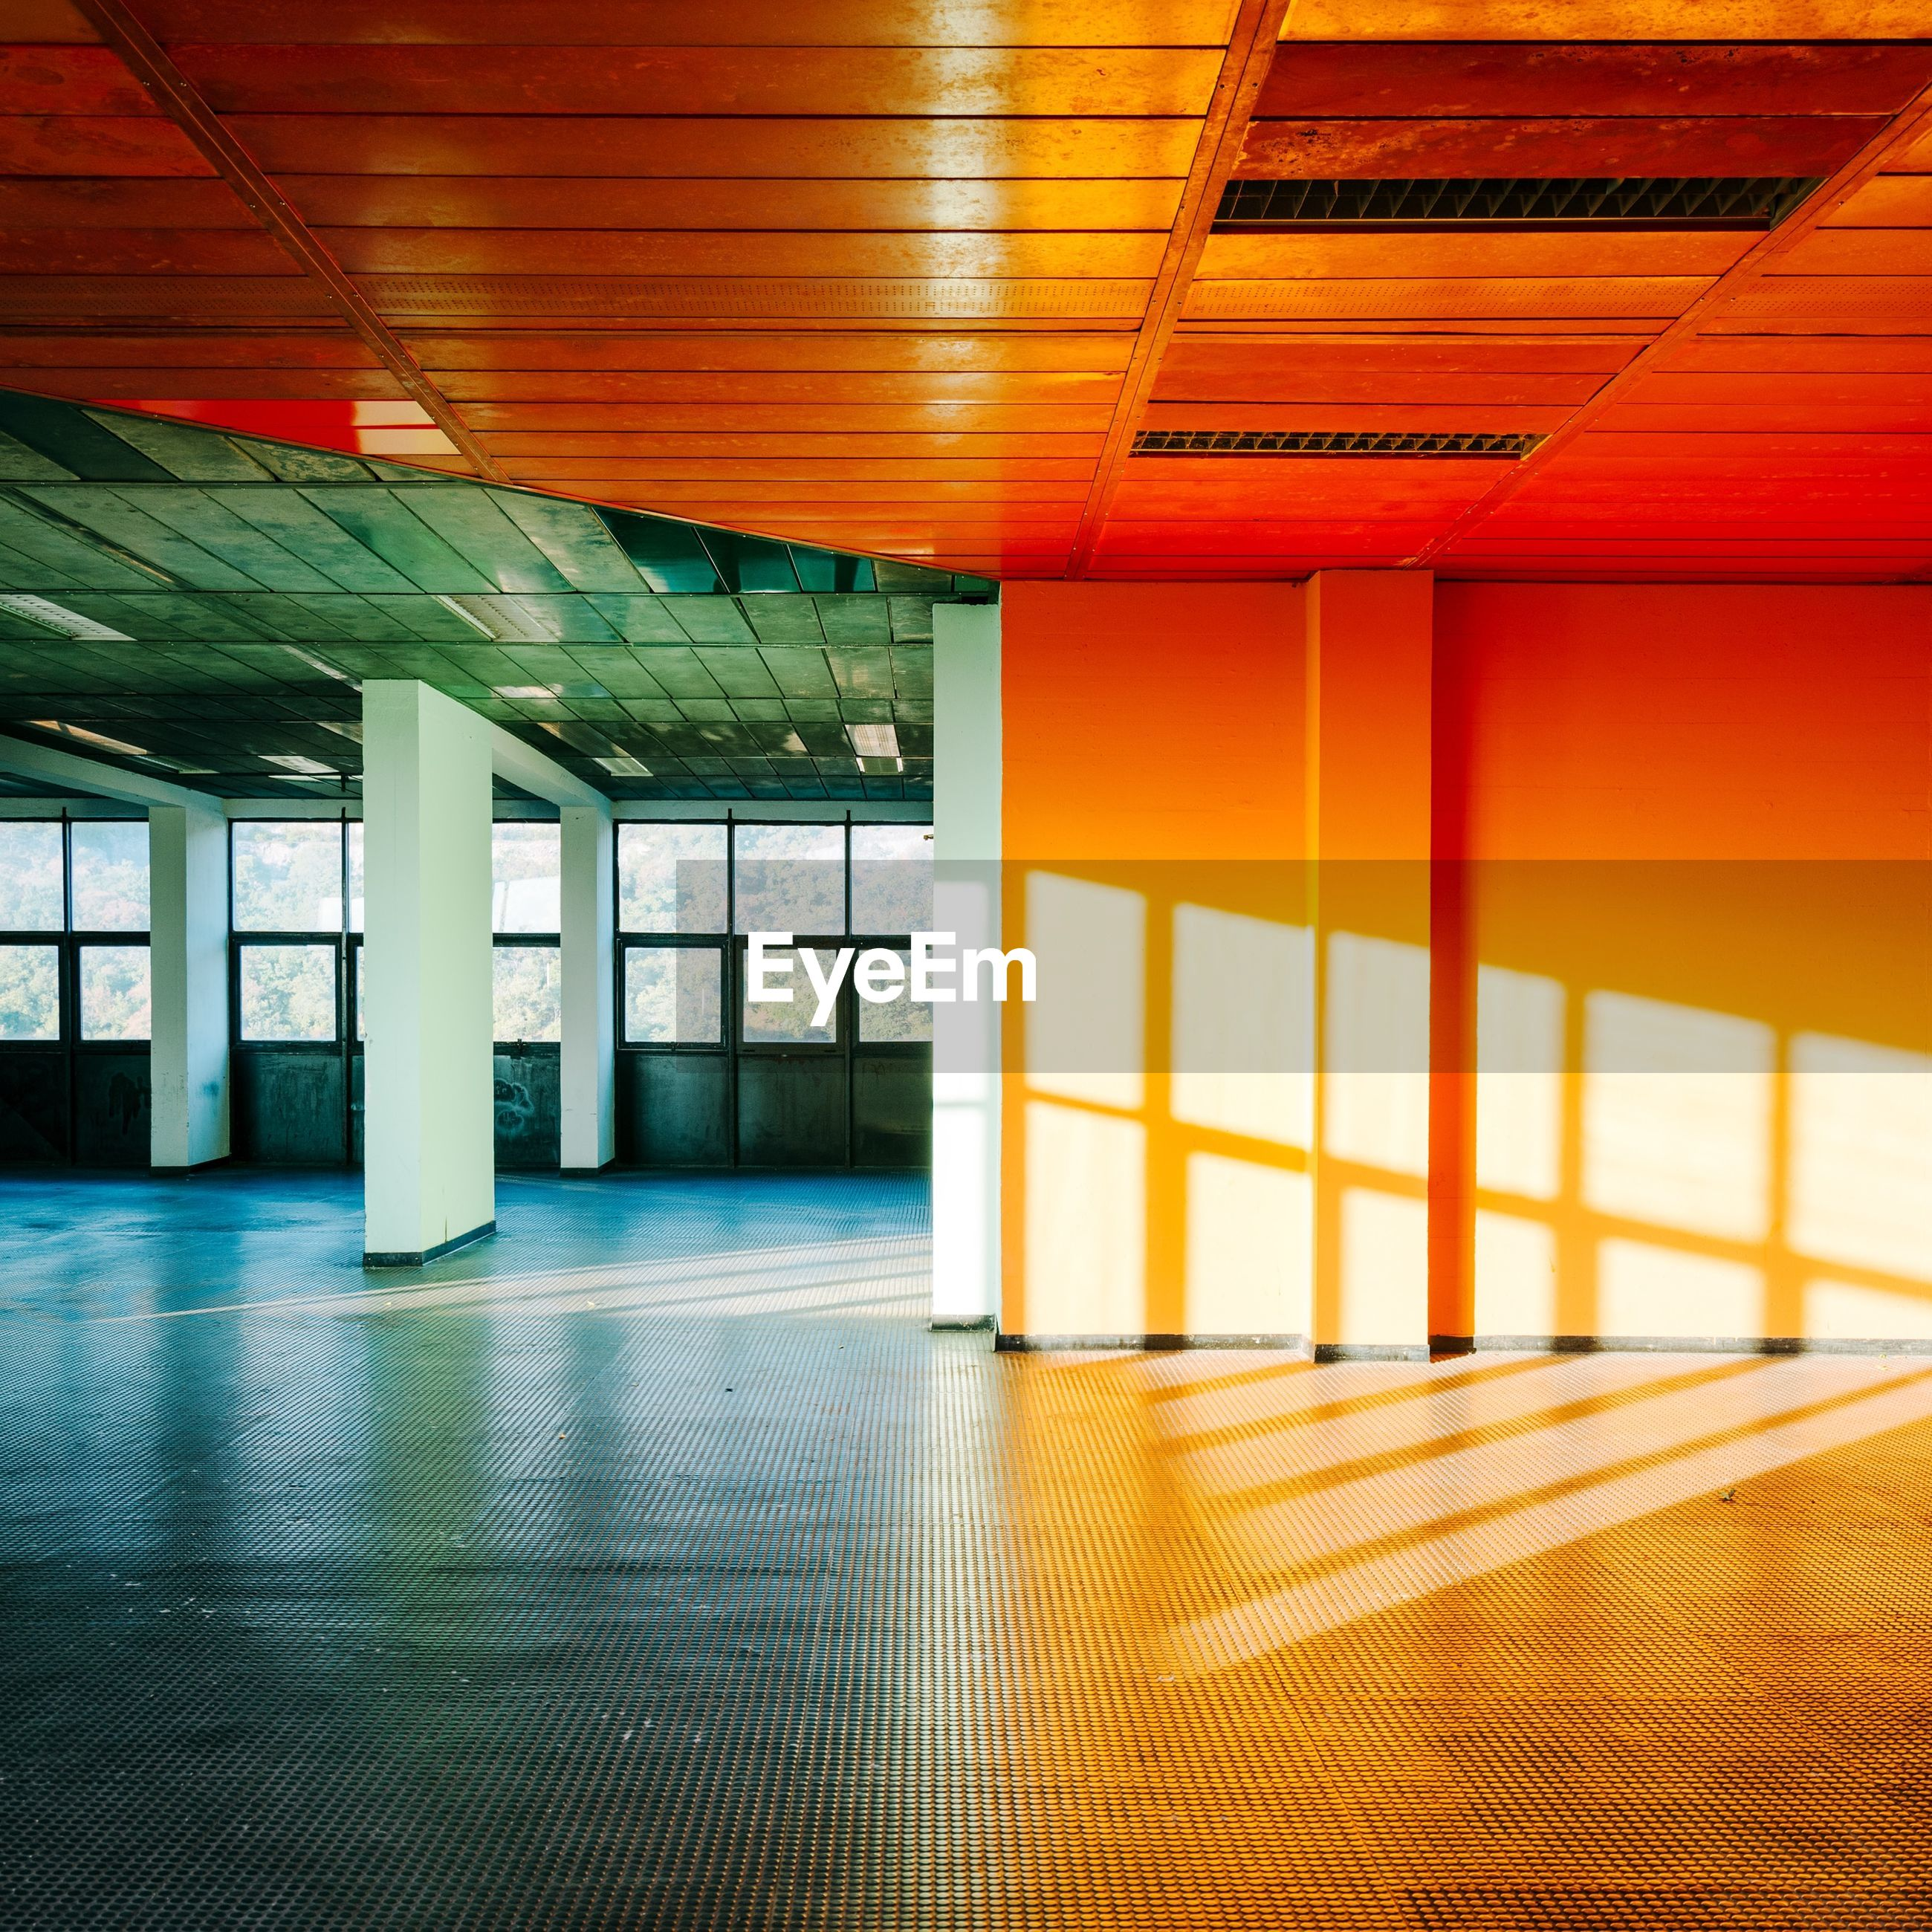 architecture, indoors, built structure, flooring, ceiling, empty, no people, architectural column, building, window, orange color, absence, reflection, transportation, illuminated, corridor, arcade, day, sunlight, modern, station